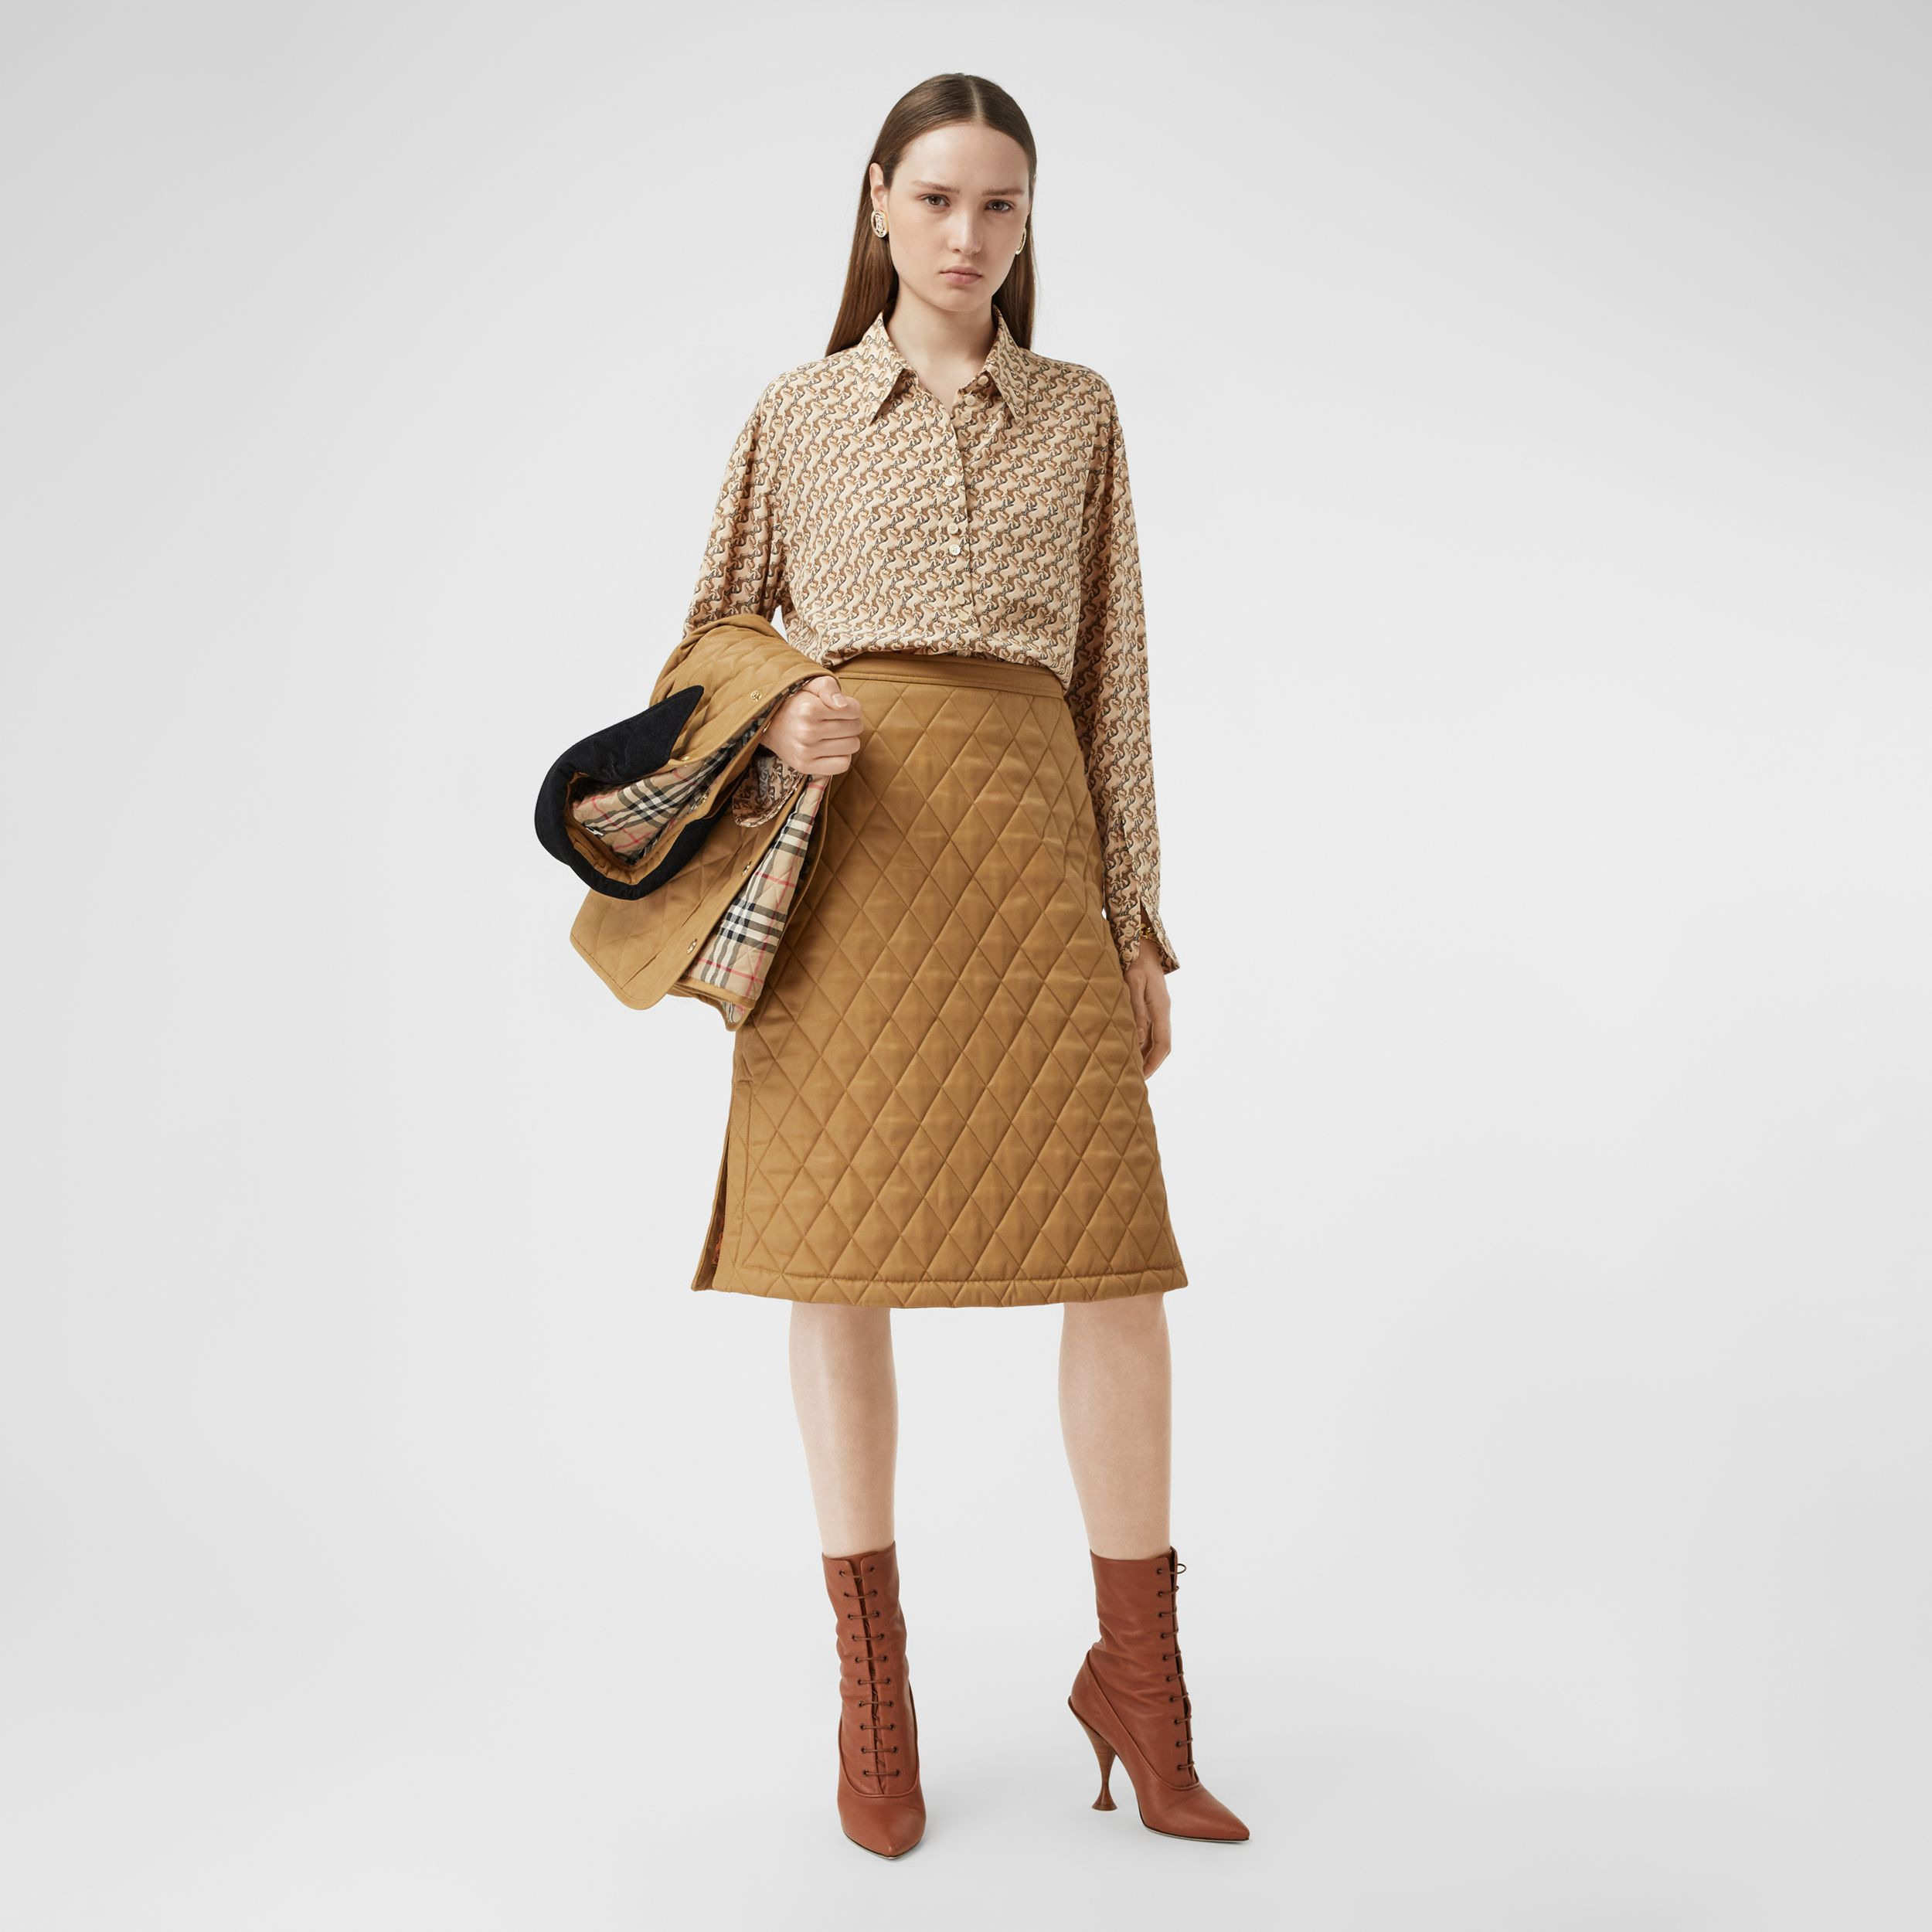 Diamond Quilted Twill A-line Skirt in Camel - Women | Burberry - 1